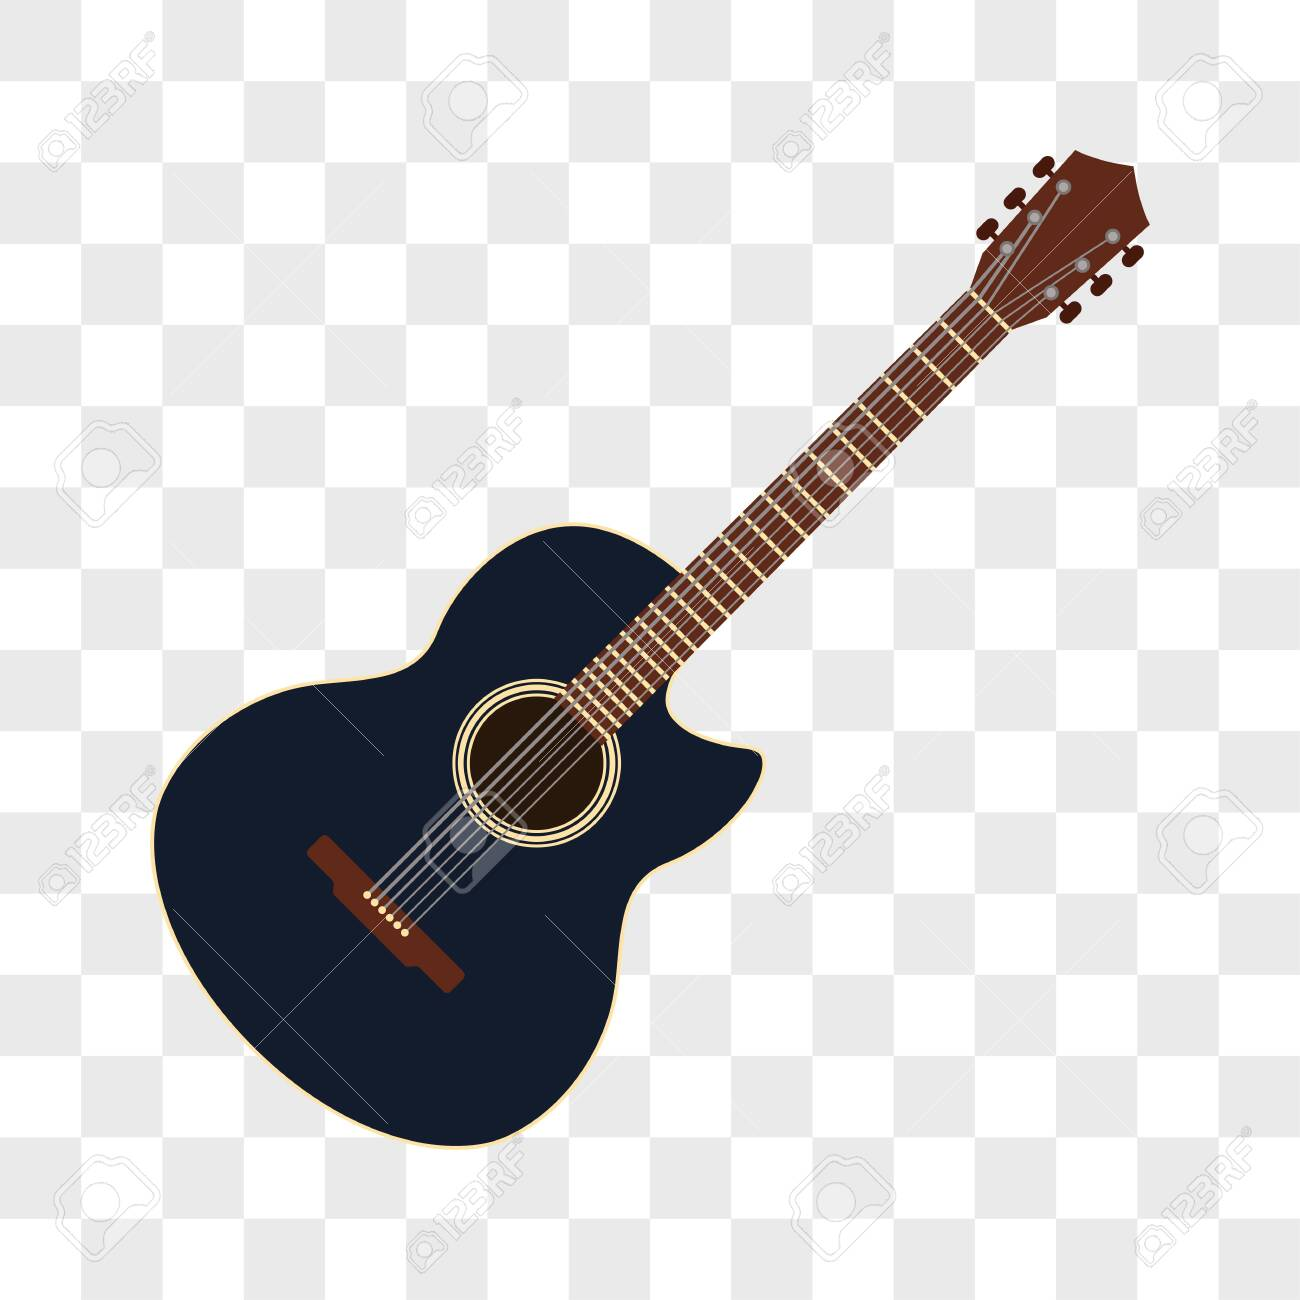 Acoustic Guitar Musical Instruments Isolated On Transparent Background Royalty Free Cliparts Vectors And Stock Illustration Image 124533034